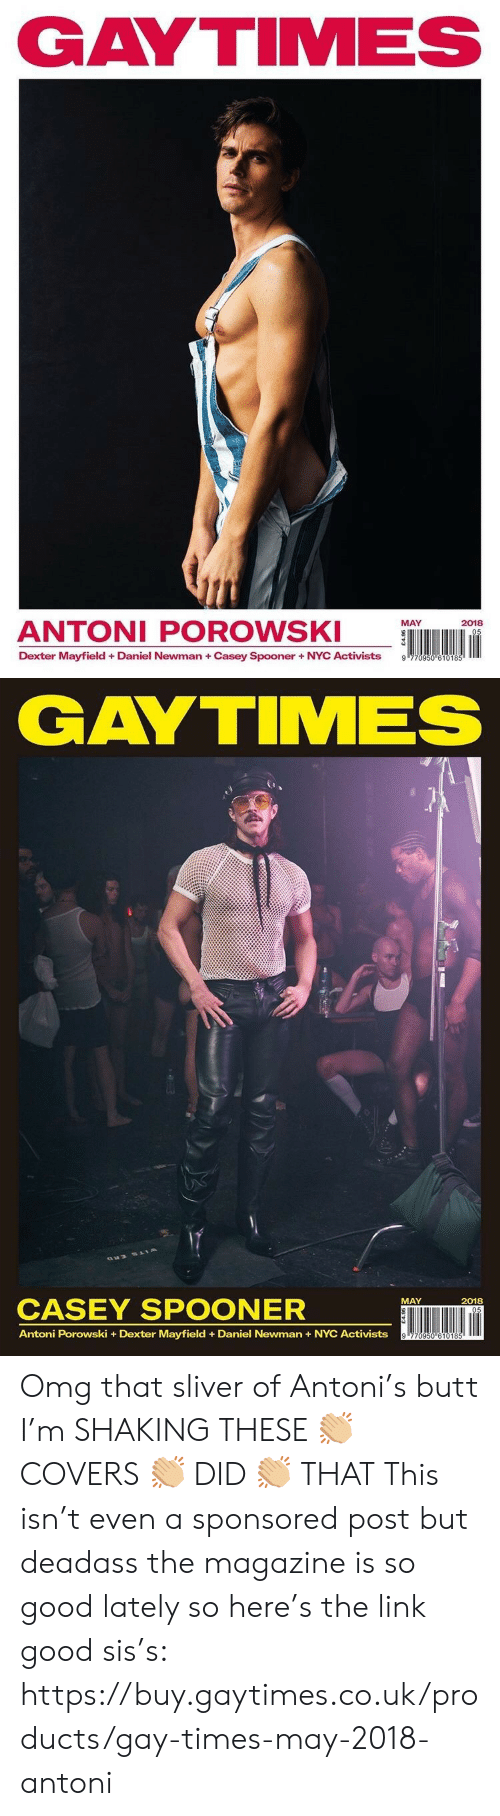 Newman: GAYTIMES  ANTONI POROWS  MAY  2018  Dexter Mayfield + Daniel Newman + Casey Spooner + NYC Activists  9   GAYTIMES  CASEY SPOONER  ÜNI lin  MAY  2018  Antoni Porowski +Dexter Mayfield Daniel Newman+NYC Activists Omg that sliver of Antoni's butt I'm SHAKING THESE 👏🏼 COVERS 👏🏼 DID 👏🏼 THAT  This isn't even a sponsored post but deadass the magazine is so good lately so here's the link good sis's: https://buy.gaytimes.co.uk/products/gay-times-may-2018-antoni